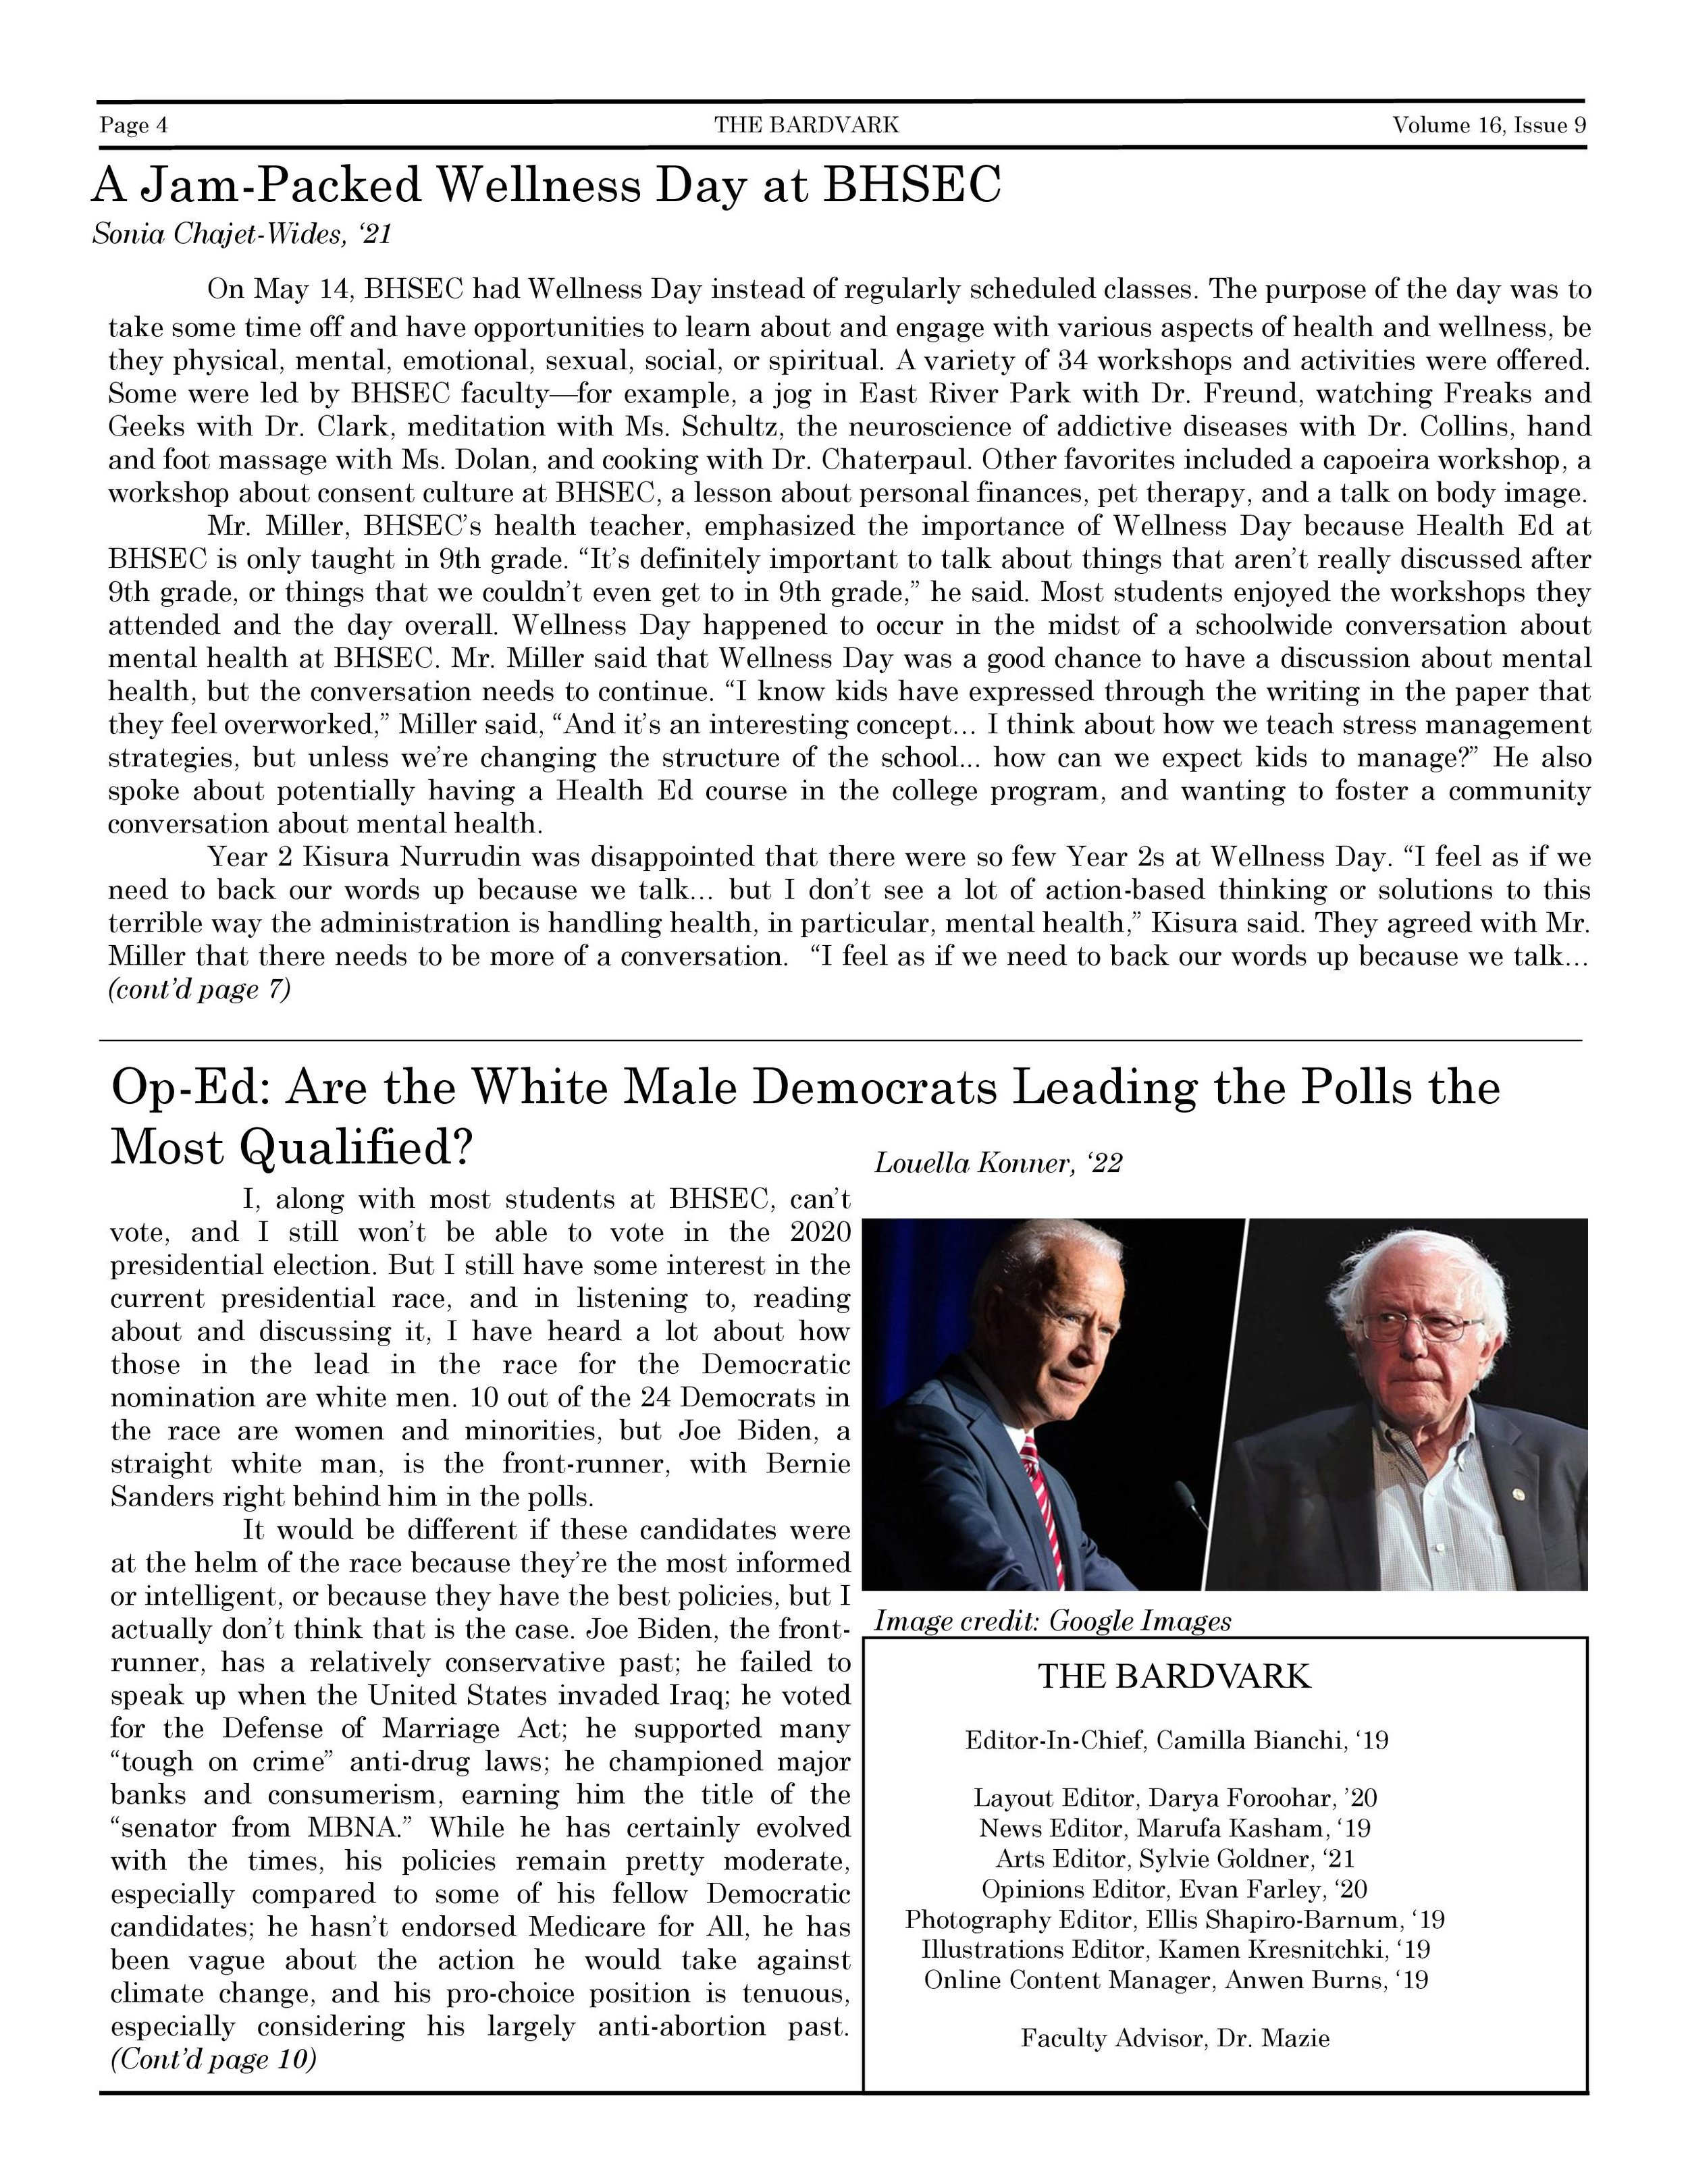 Issue 9 May 2019-4.jpg